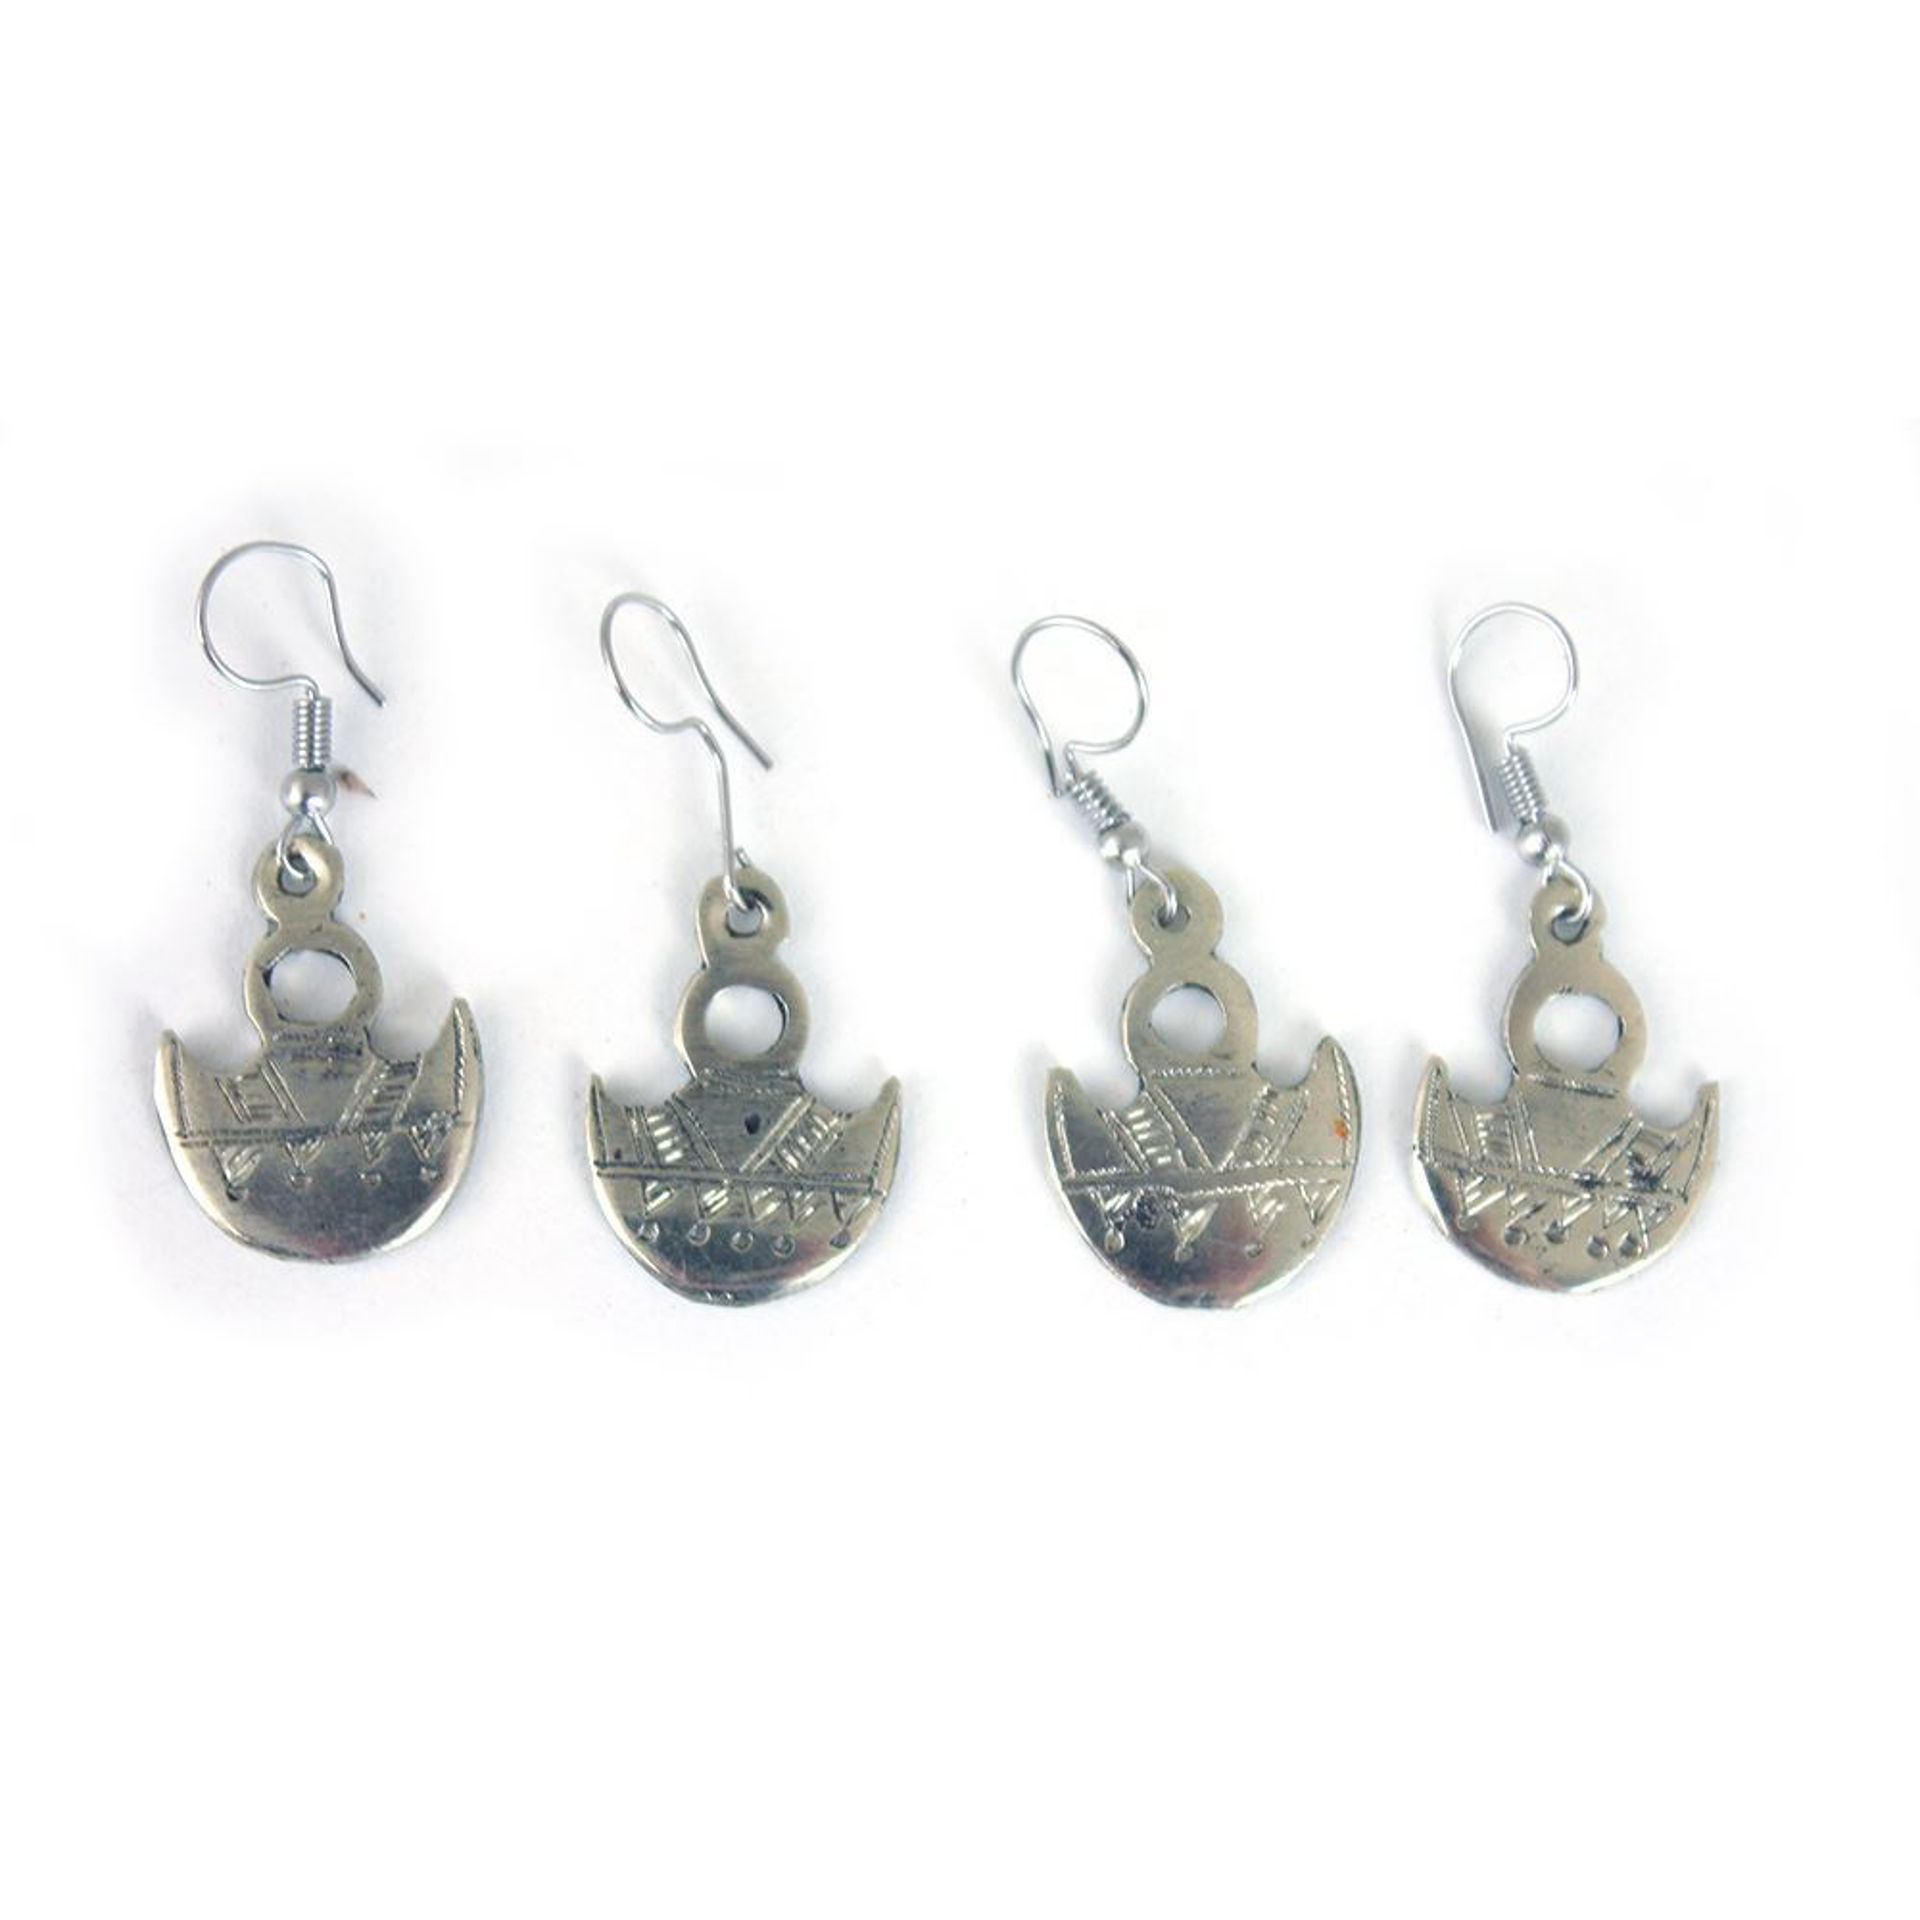 Picture of Rustic Shield Of Gofed Earrings: 2 Pairs